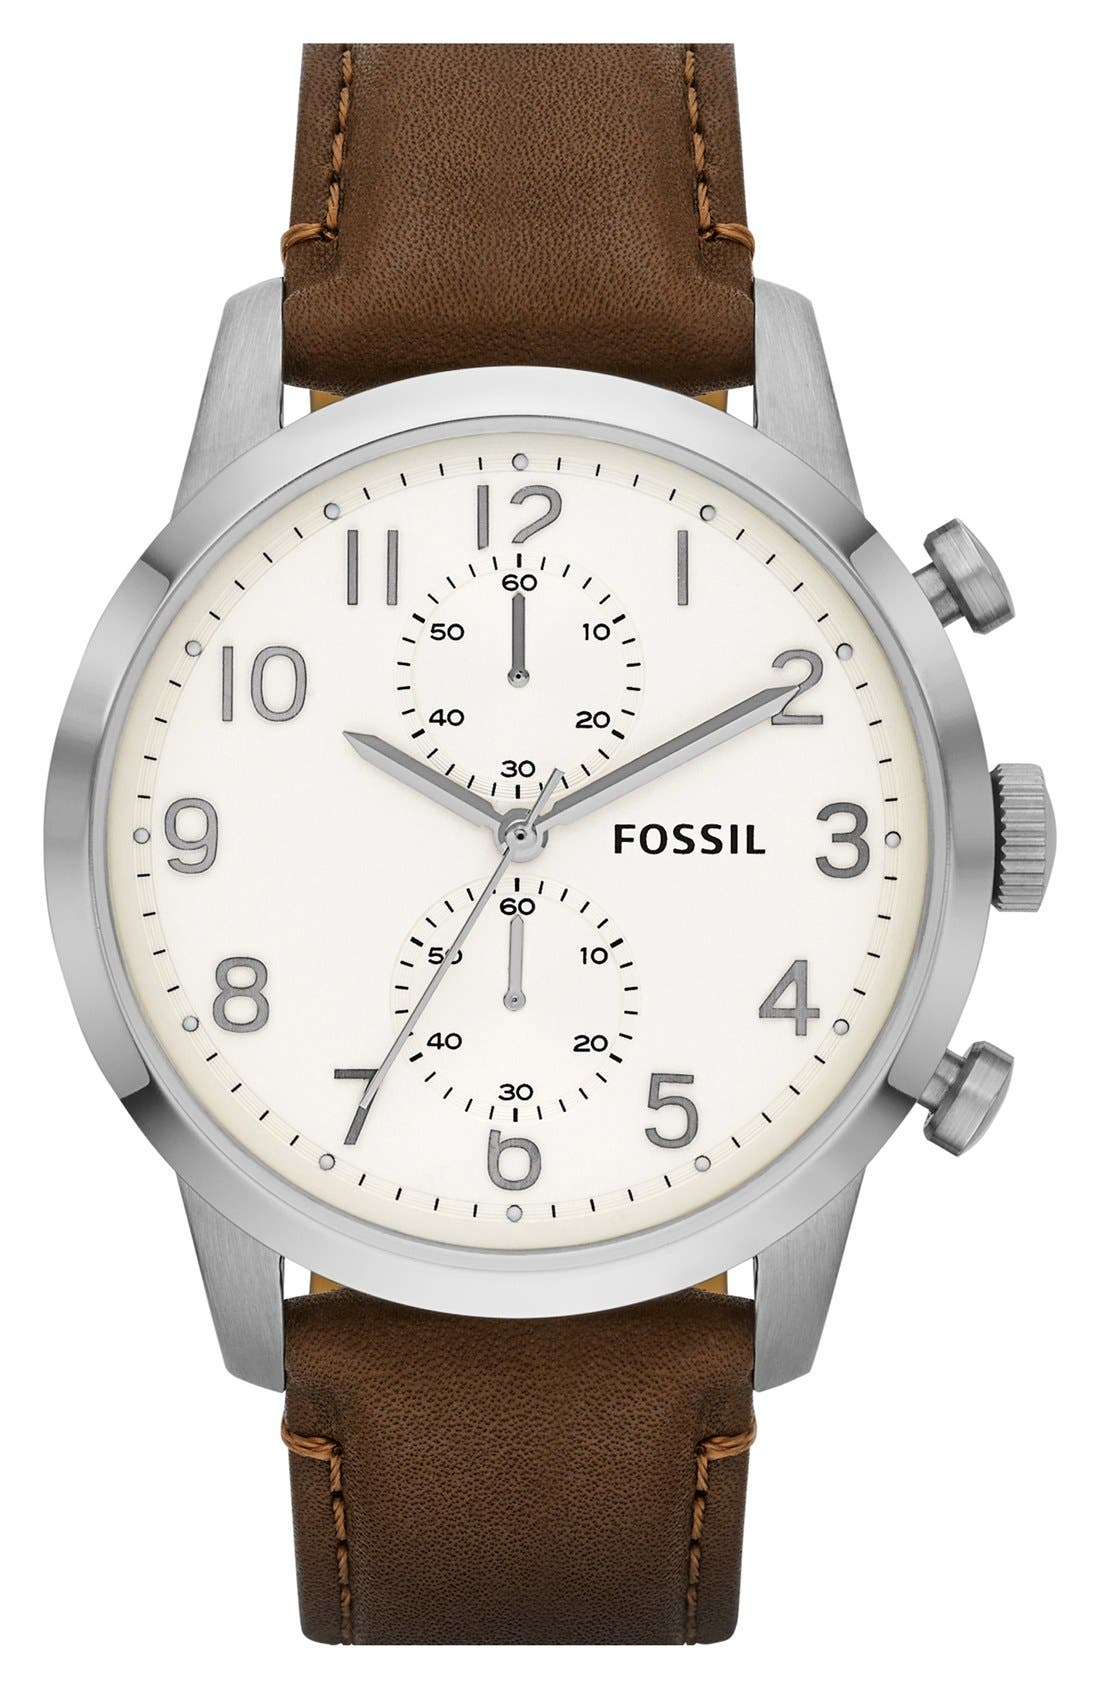 Main Image - Fossil 'Townsman' Round Leather Strap Watch, 44mm